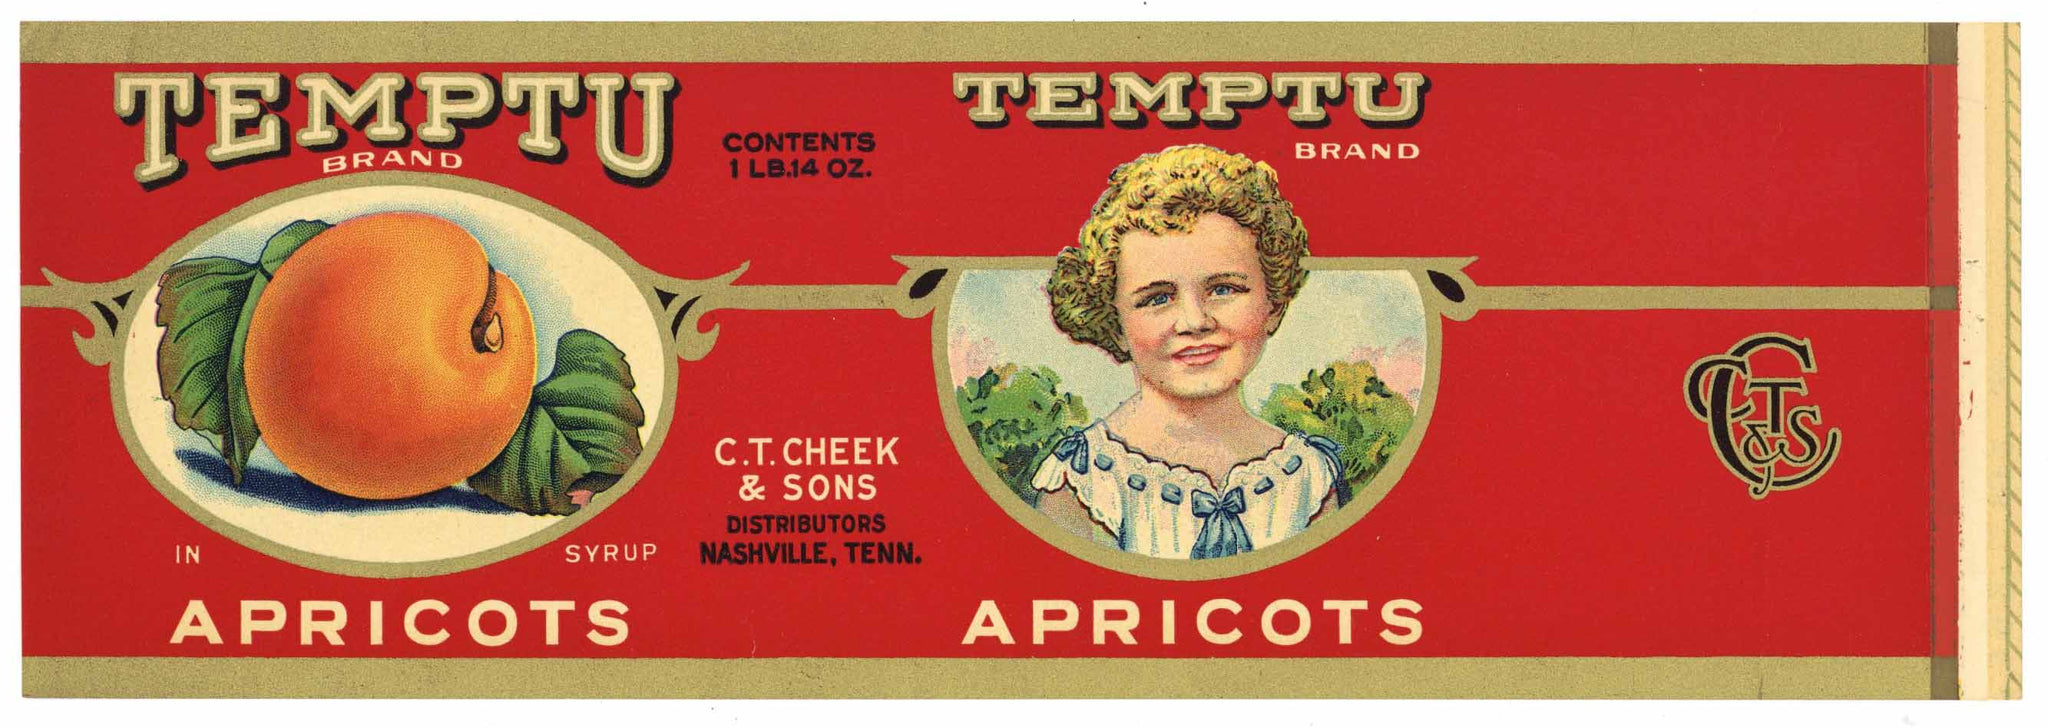 Temptu Brand Vintage Nashville Tennessee Can Label